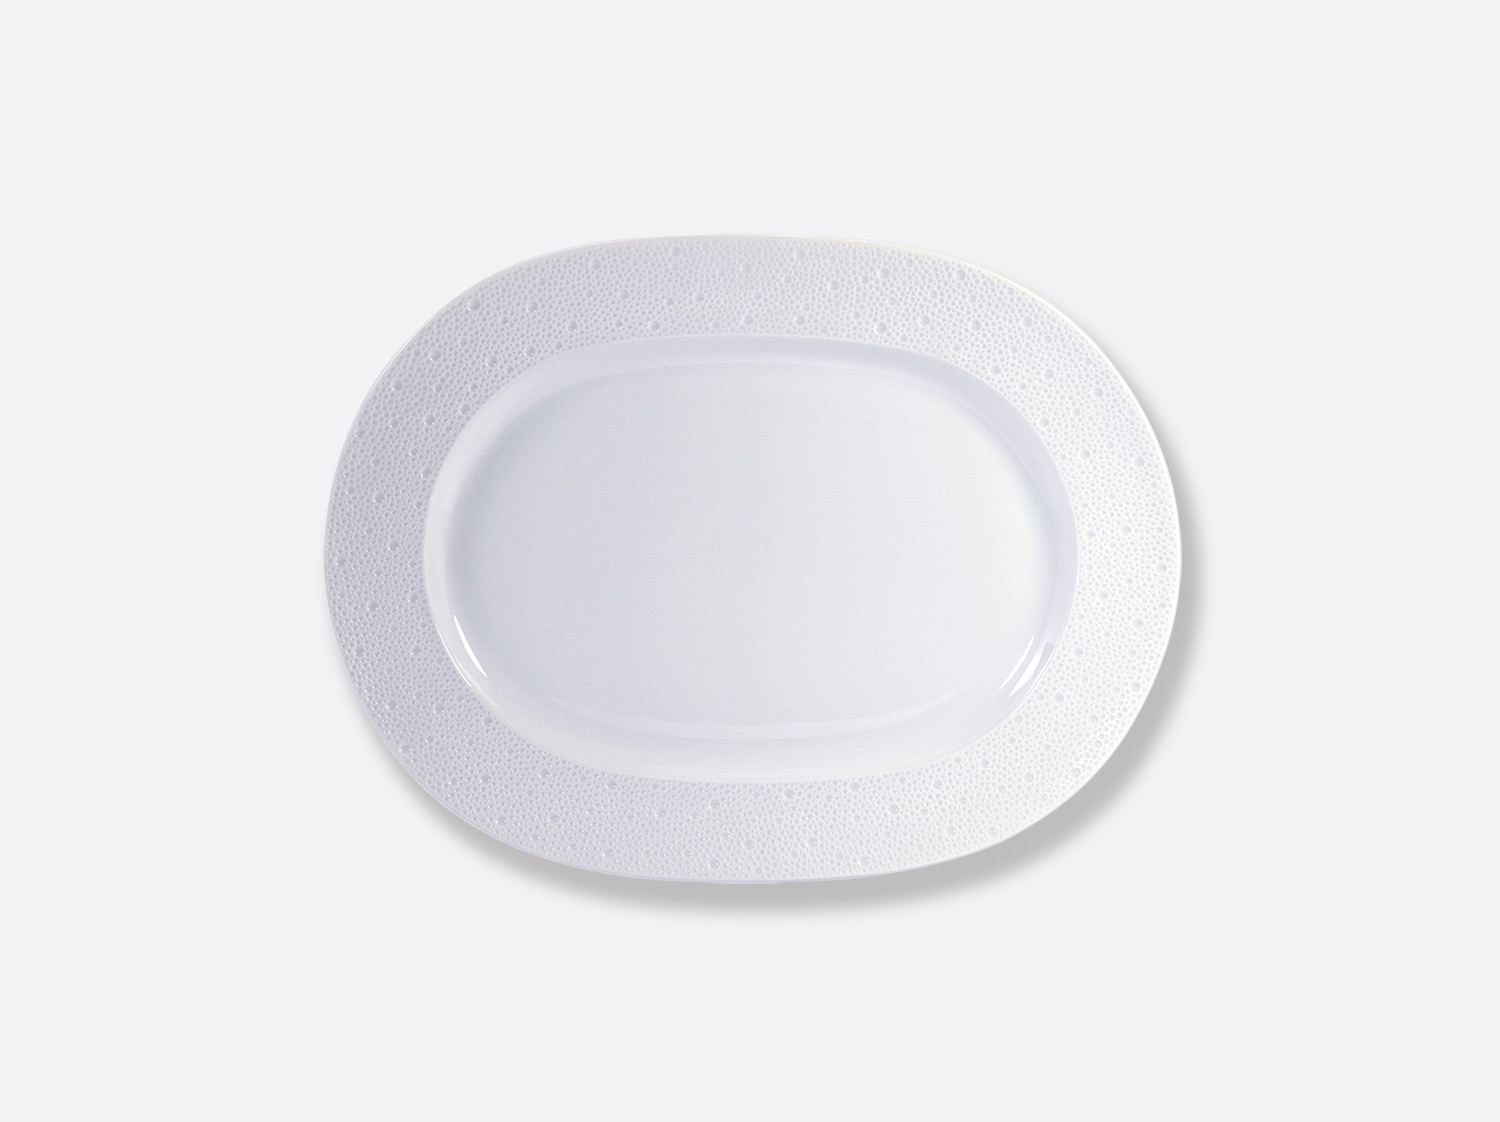 Plat ovale 35 cm en porcelaine de la collection Ecume Bernardaud